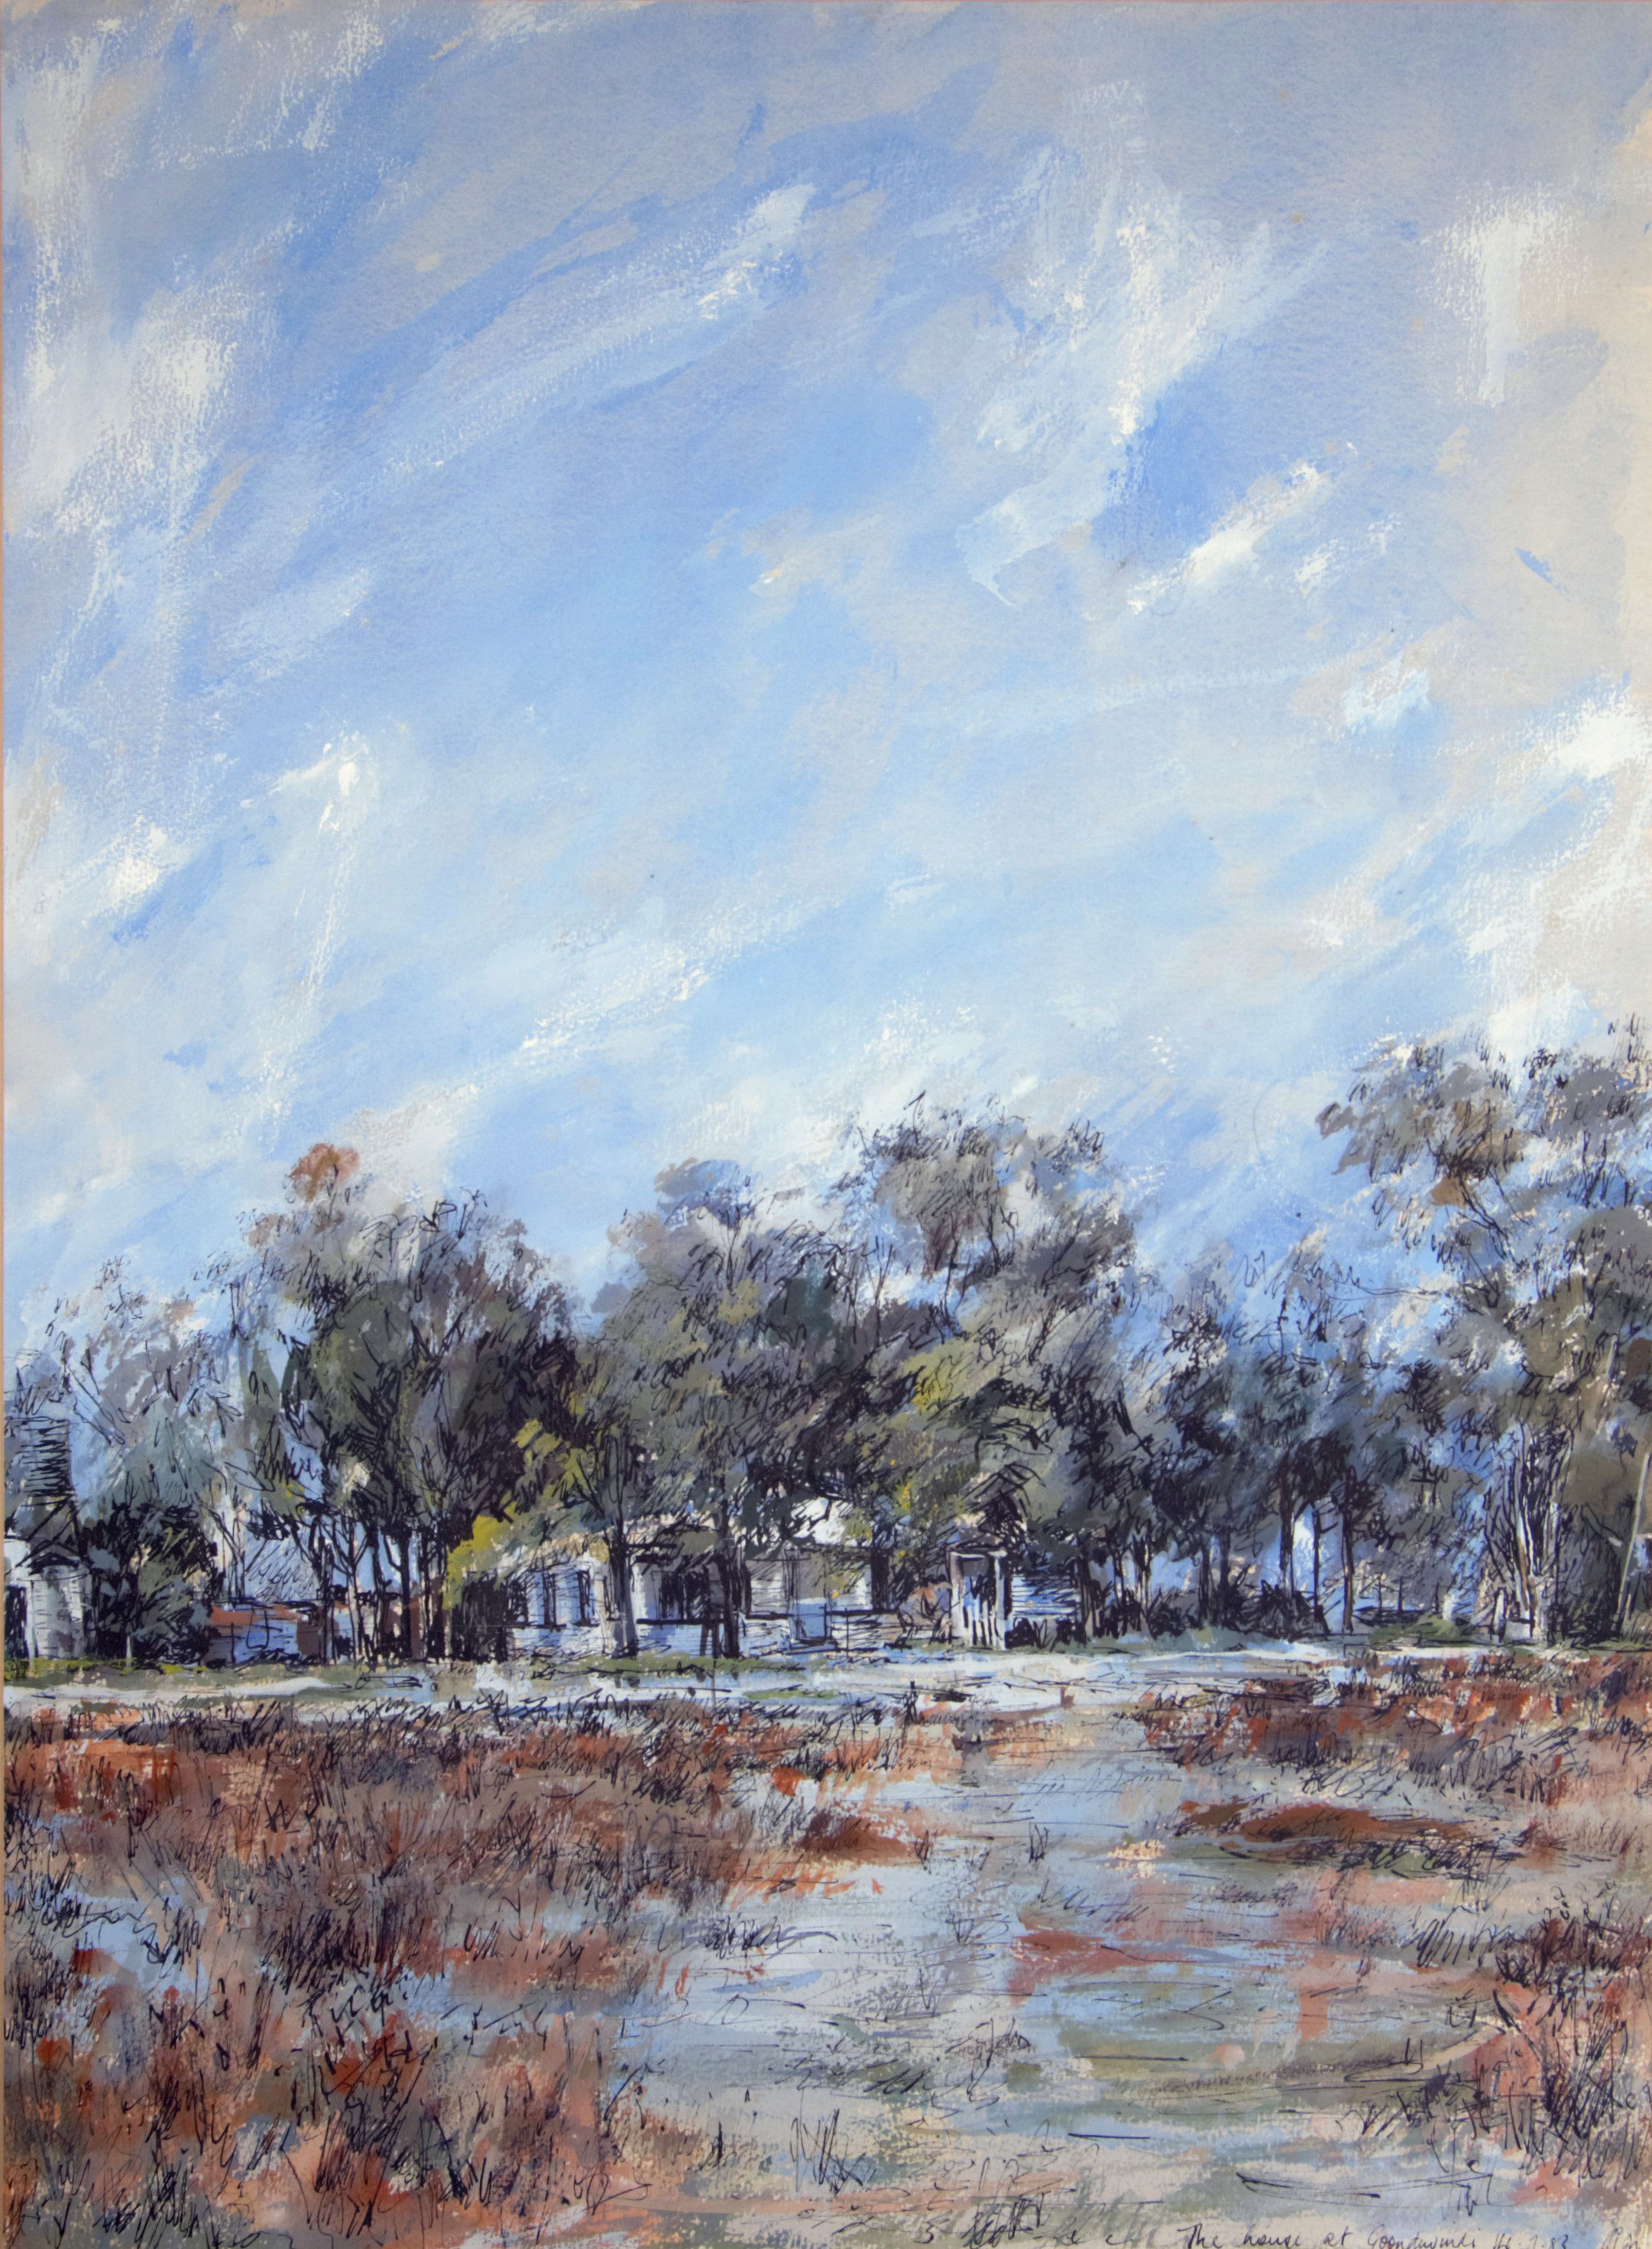 The House at Goondiwindi 1983 Ink and gouache on rag paper 73 x 53cm